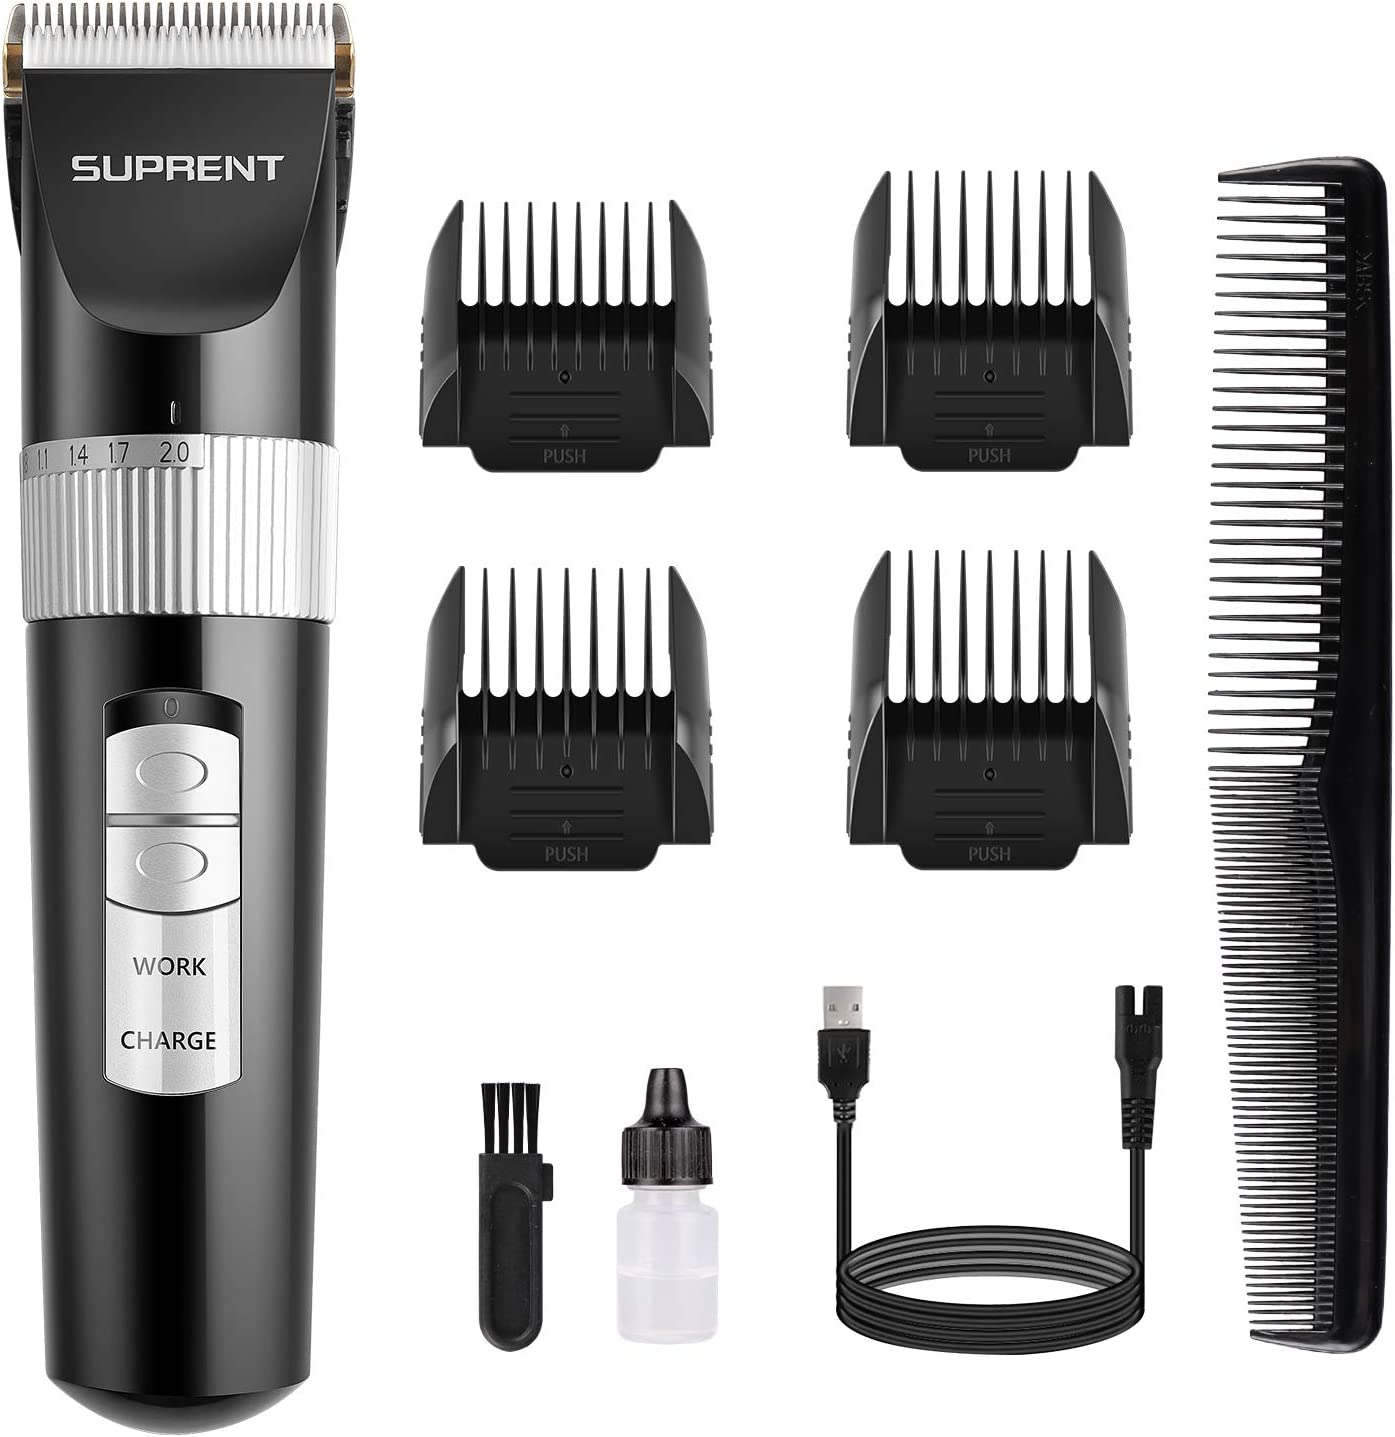 Hair Clippers SUPRENT Professional Cordless Rechargeable Haircut Kit WAS £20.99 NOW £10.49 w/code 8XF47LI4 @ Amazon